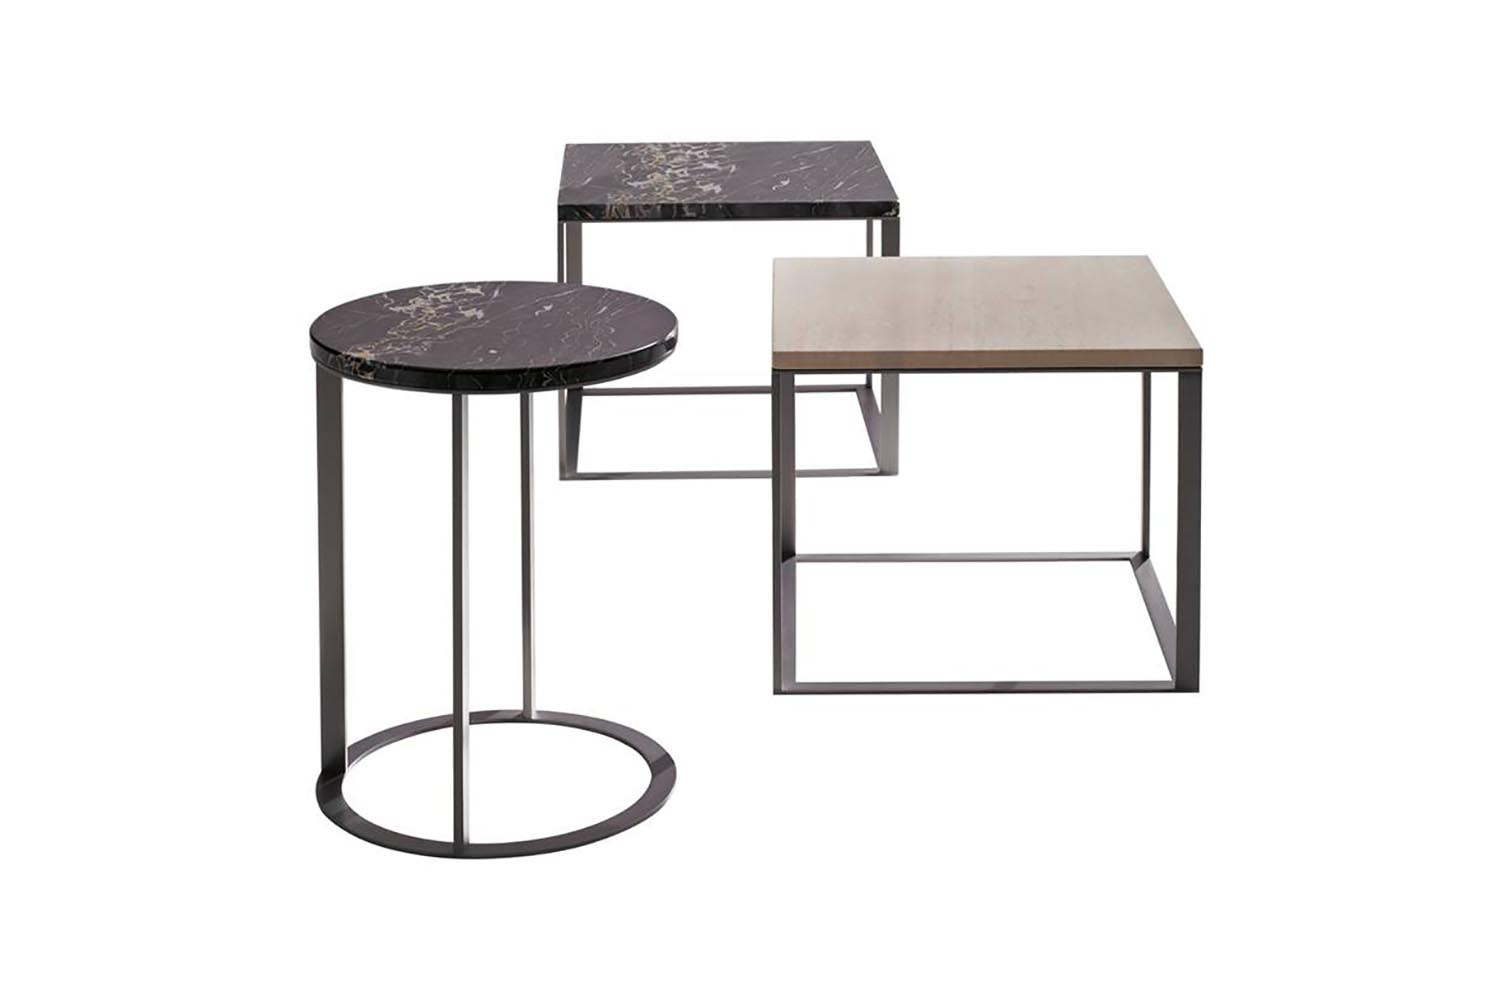 Lithos Side & Coffee Table by Antonio Citterio for Maxalto